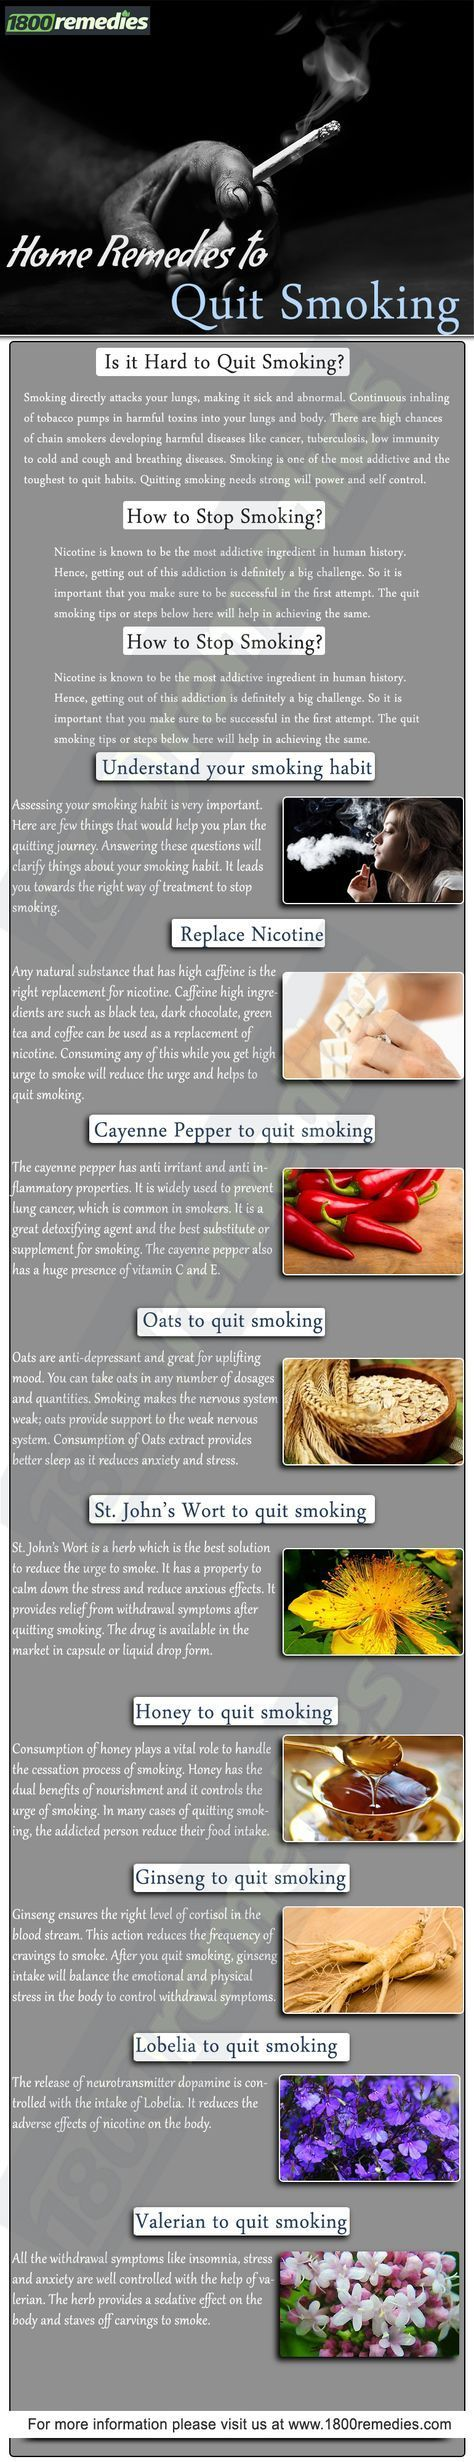 Home remedies to help quit smoking